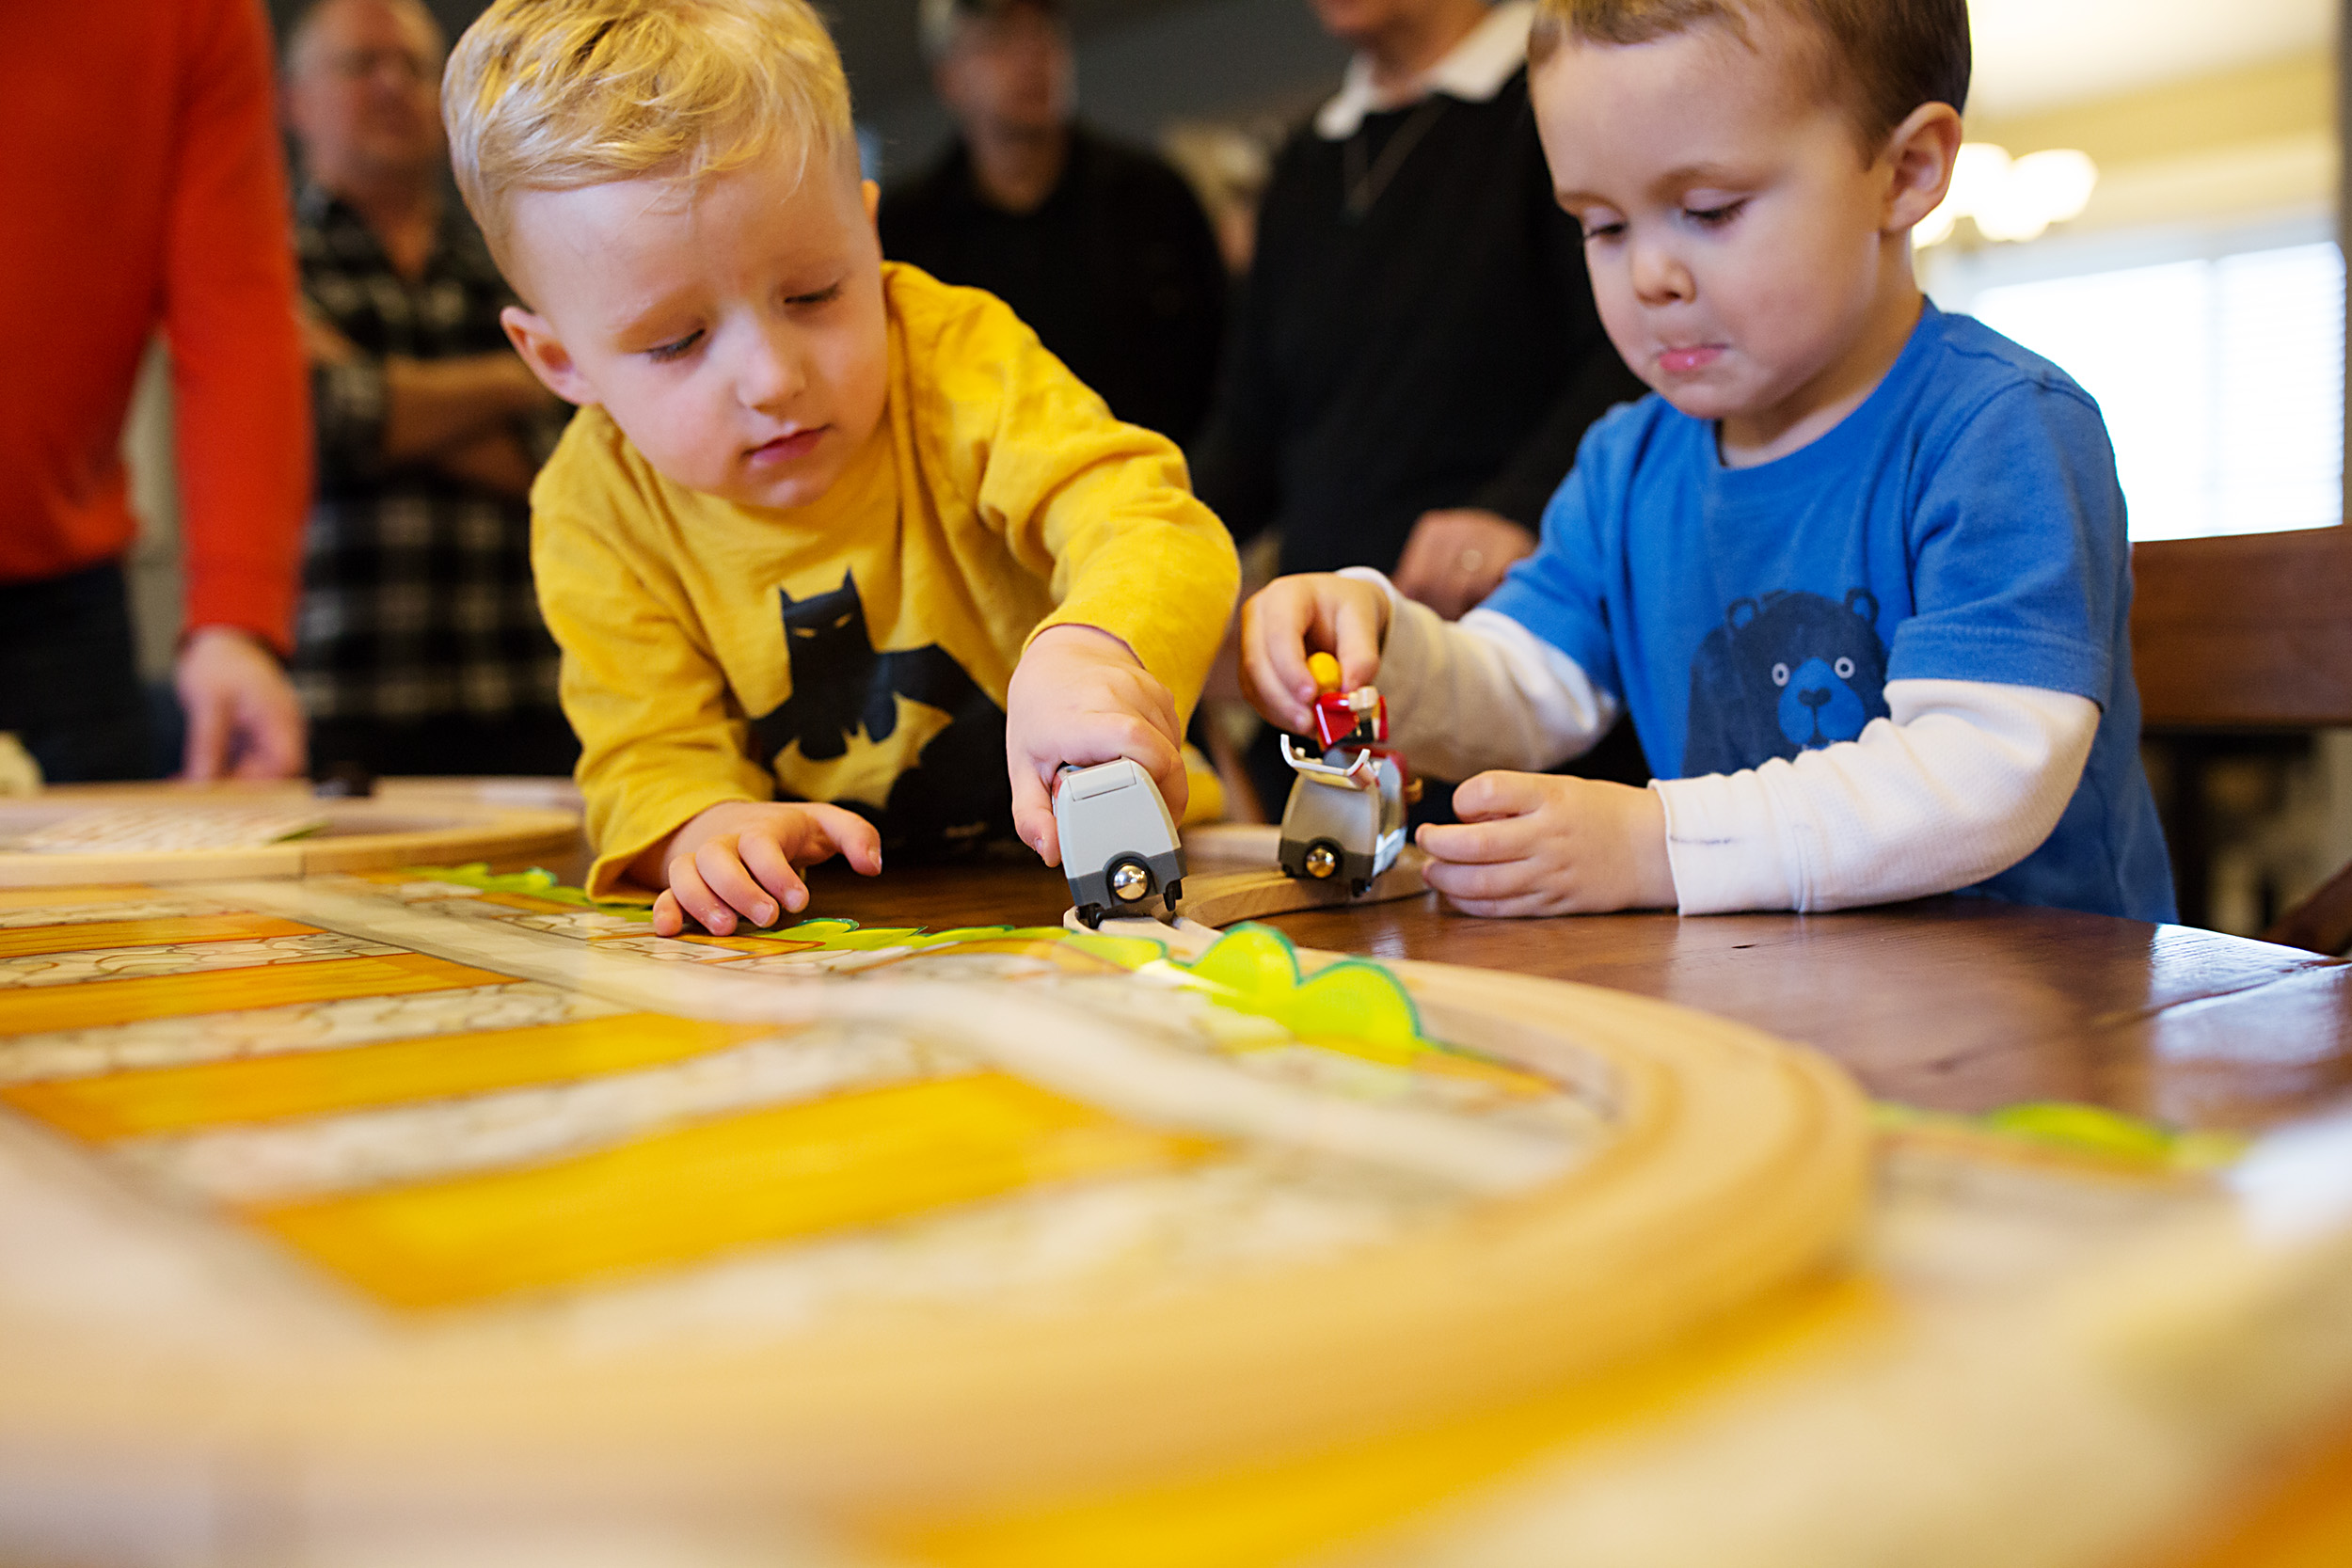 two boys play with trains on dining room table